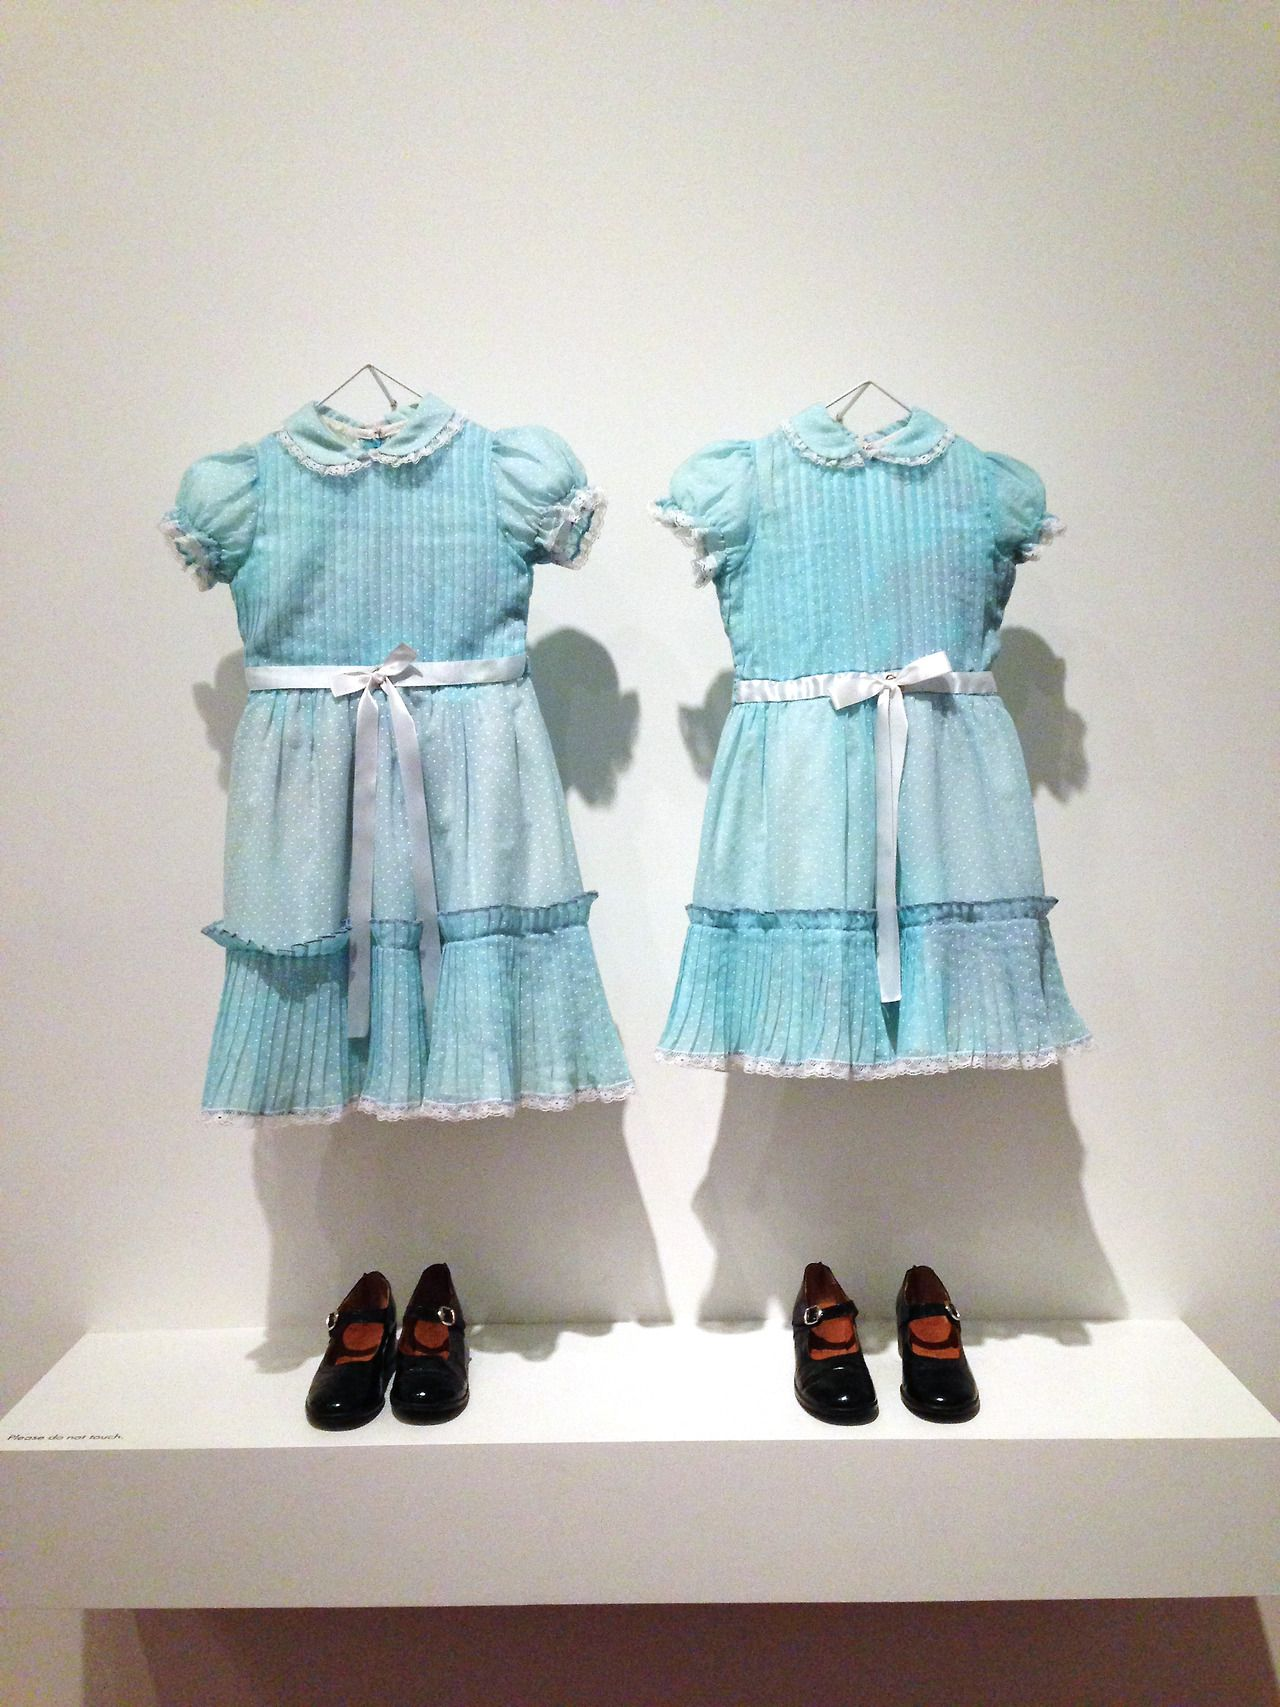 The Grady Twins Dresses And Patent Leather Shoes On Display At Los Angeles County Museum Of Art S Stanley Kubrick Exhibit